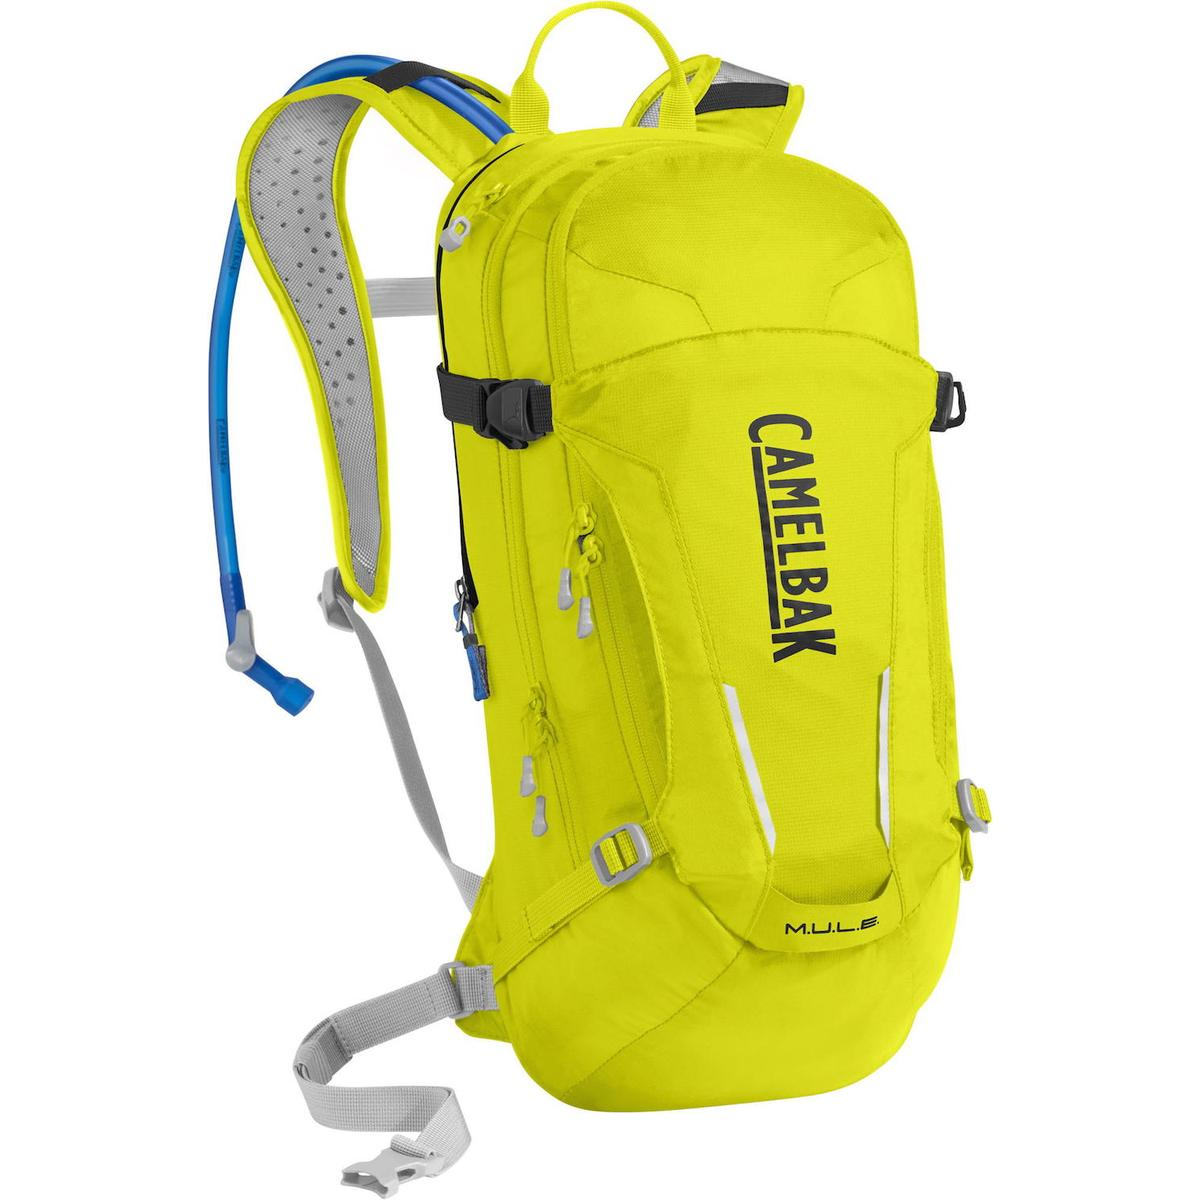 Camelbak MULE 100oz Backpack